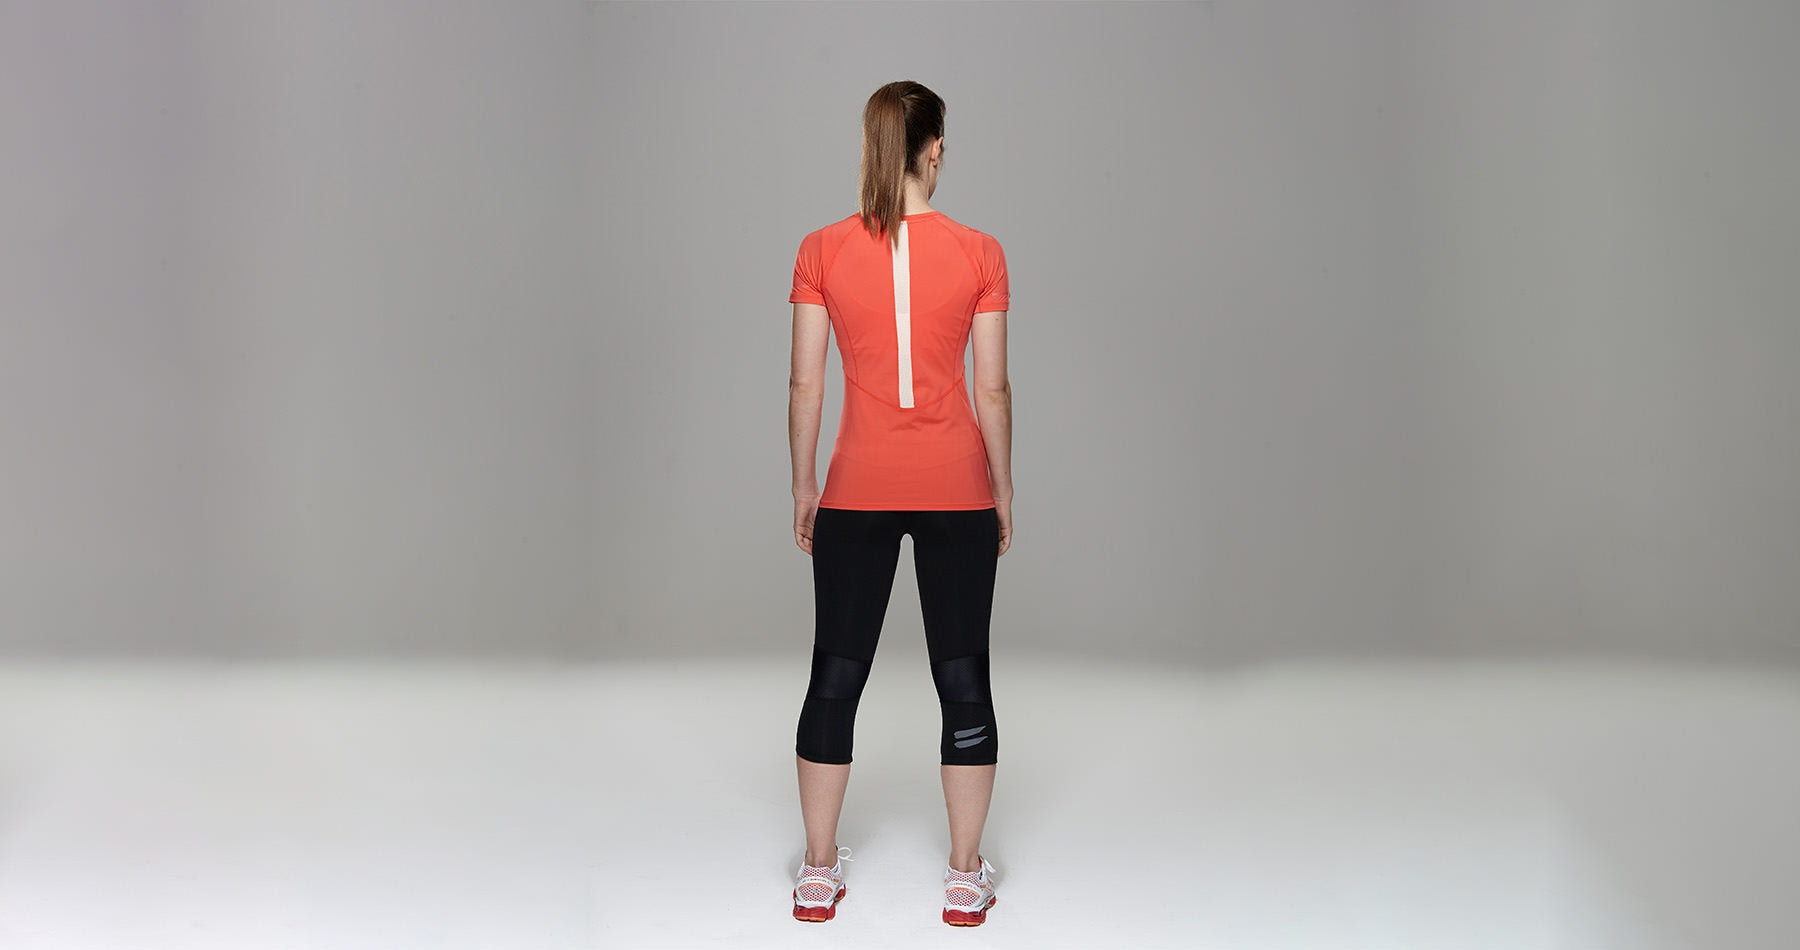 Tribesports Core Women's Short Sleeve Top Coral  6